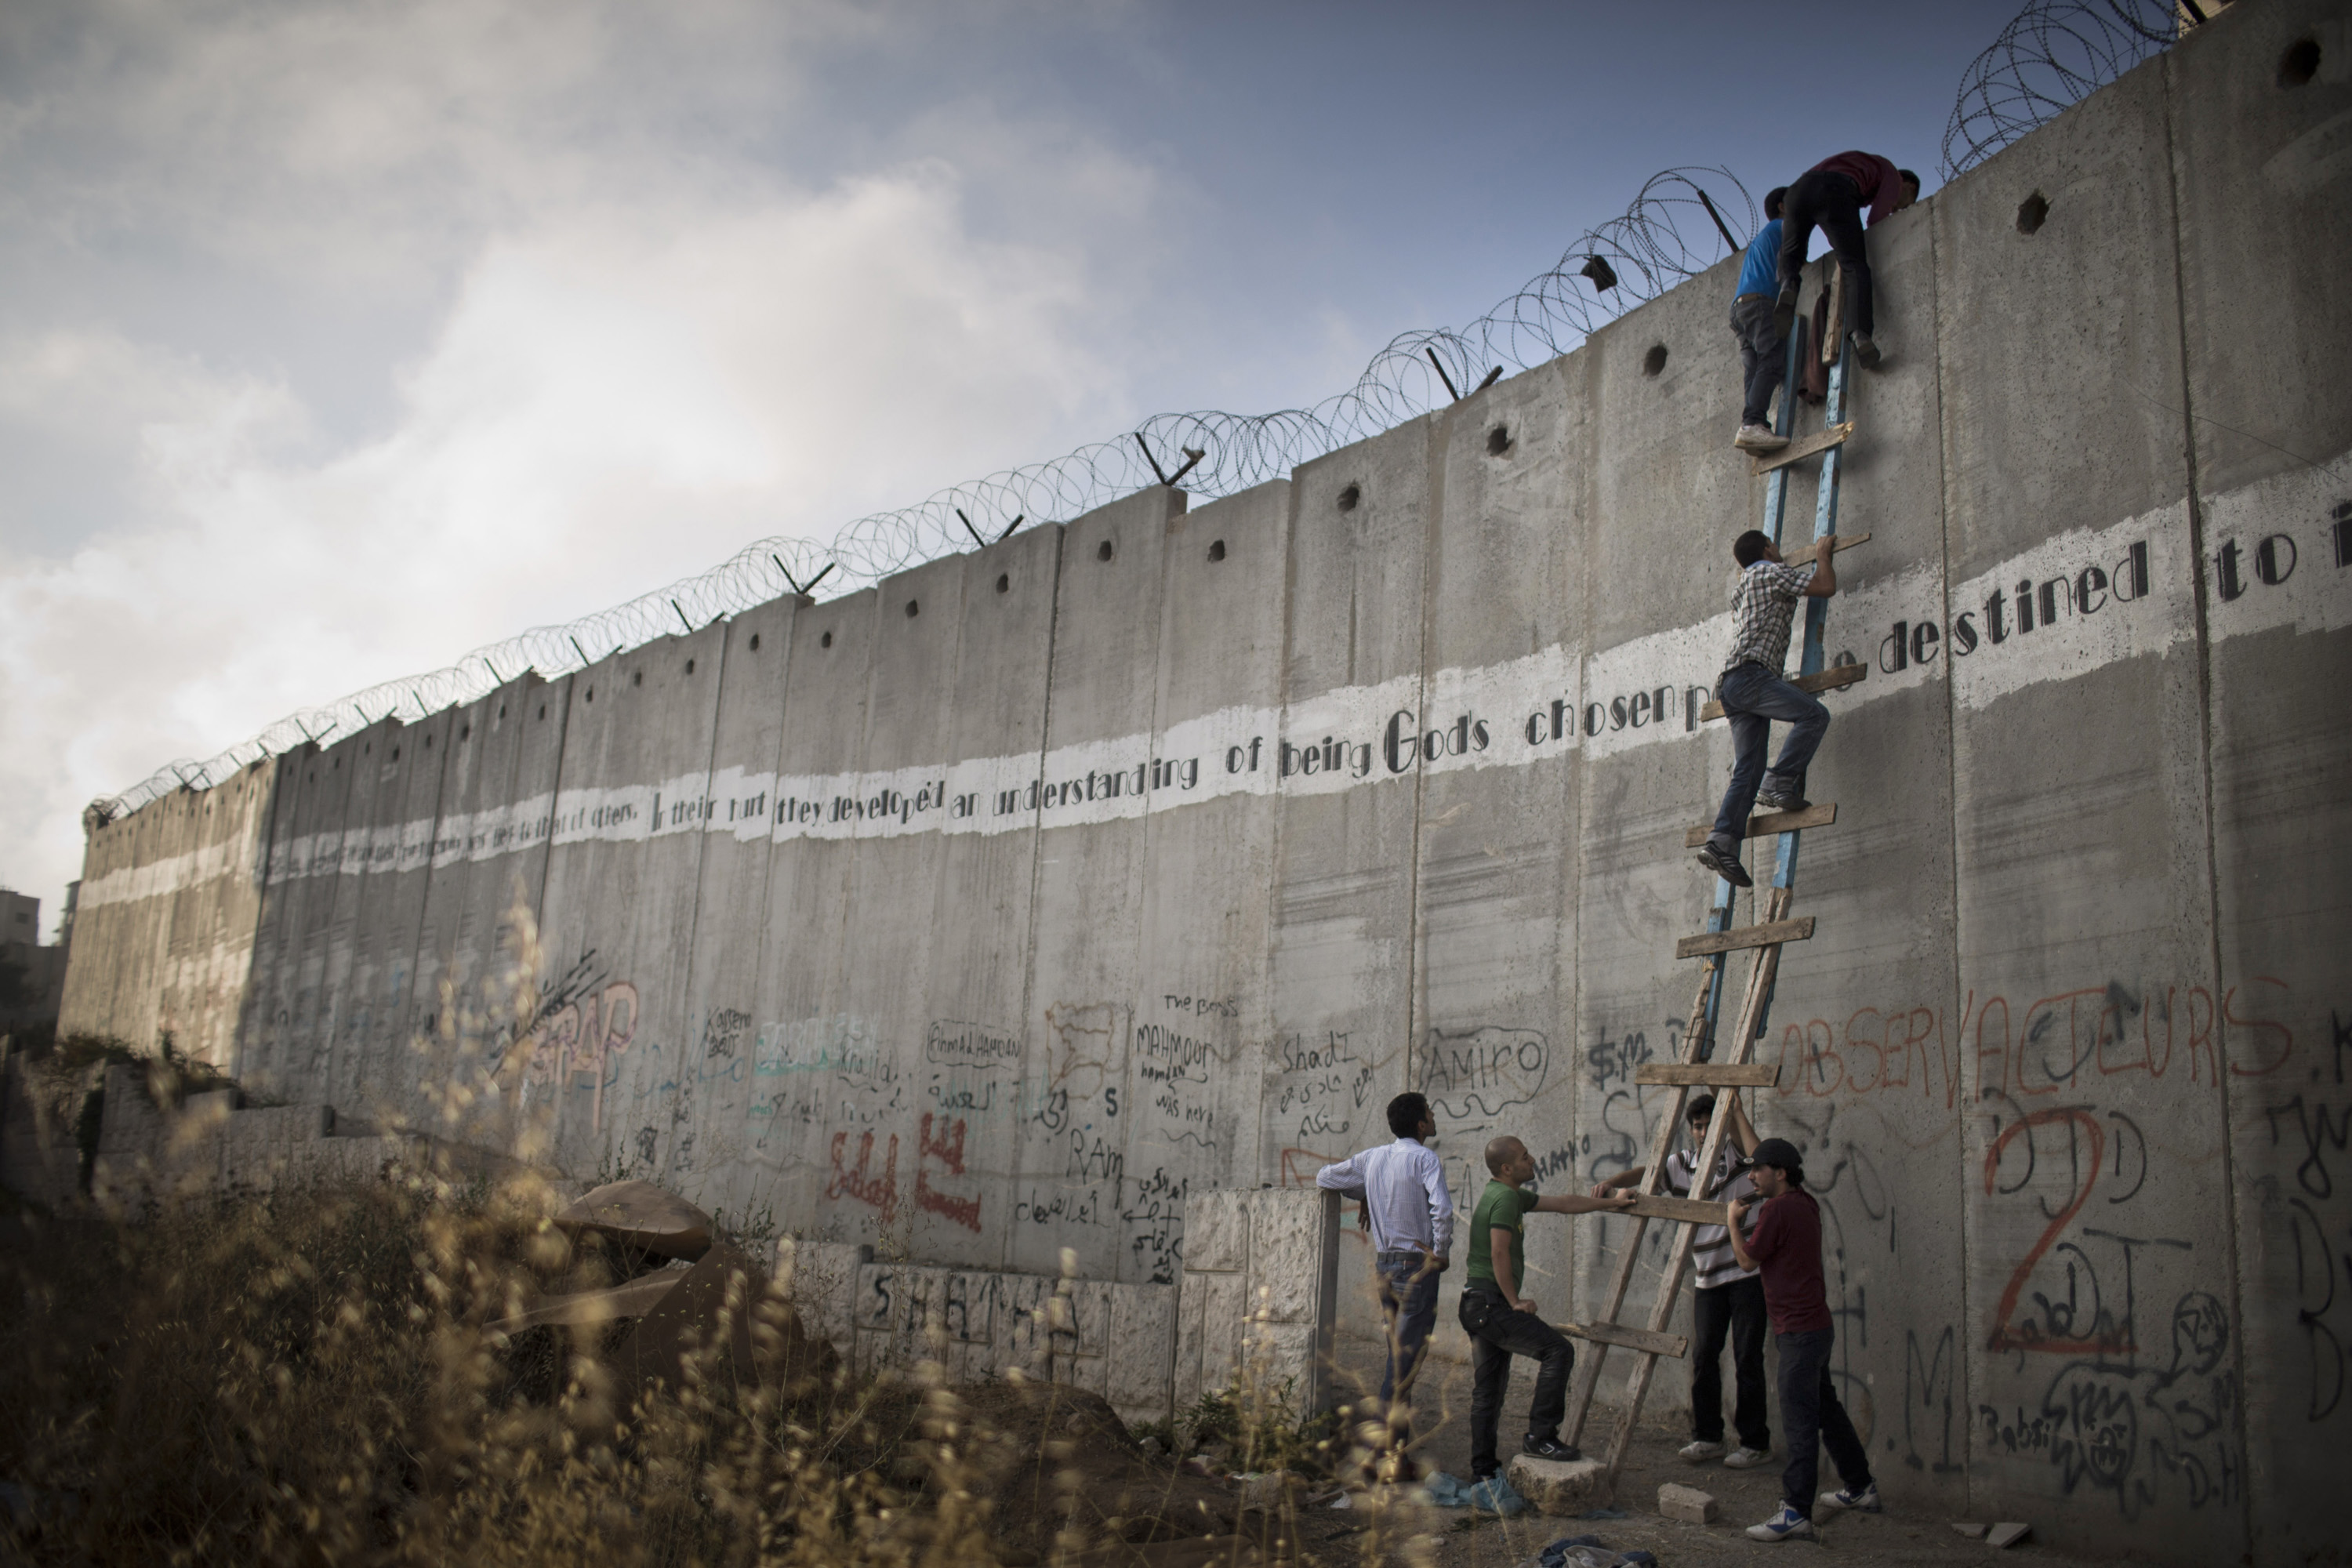 Palestinians used a ladder to climb over the Israeli wall in A-Ram, north of Jerusalem, on their way to the second Friday prayer of Ramadan near the Al-Aqsa mosque in the Old City, July 19, 2013. (Photo by Oren Ziv/GroundTruth)